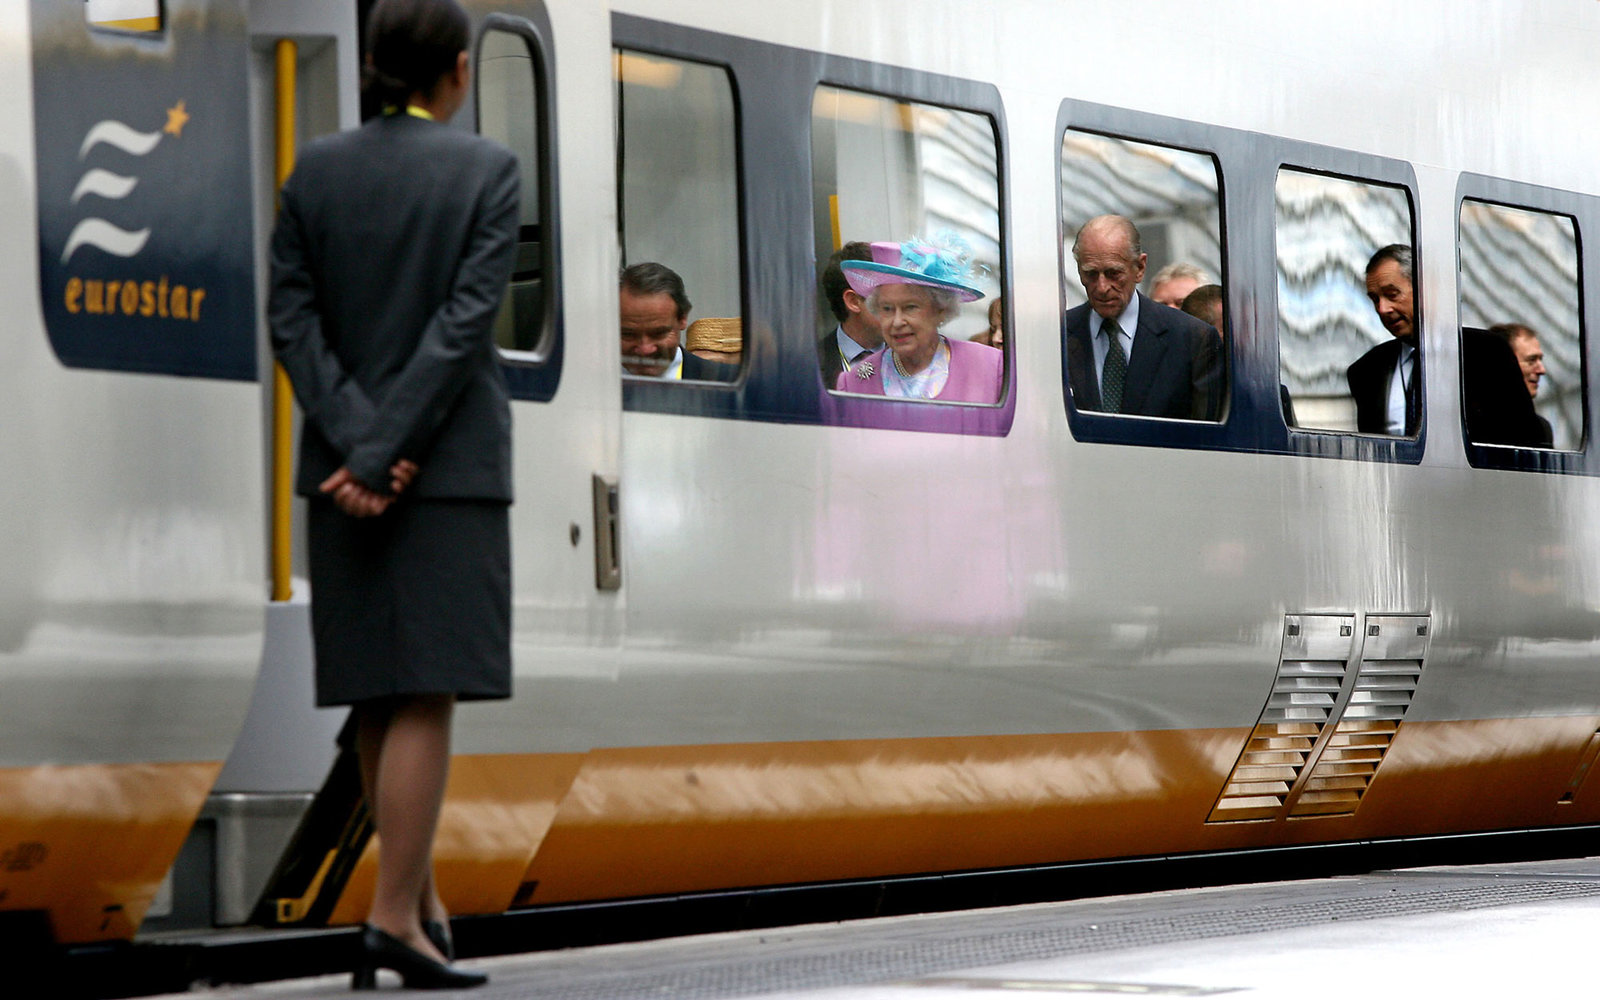 Queen Elizabeth II Brussels 2007